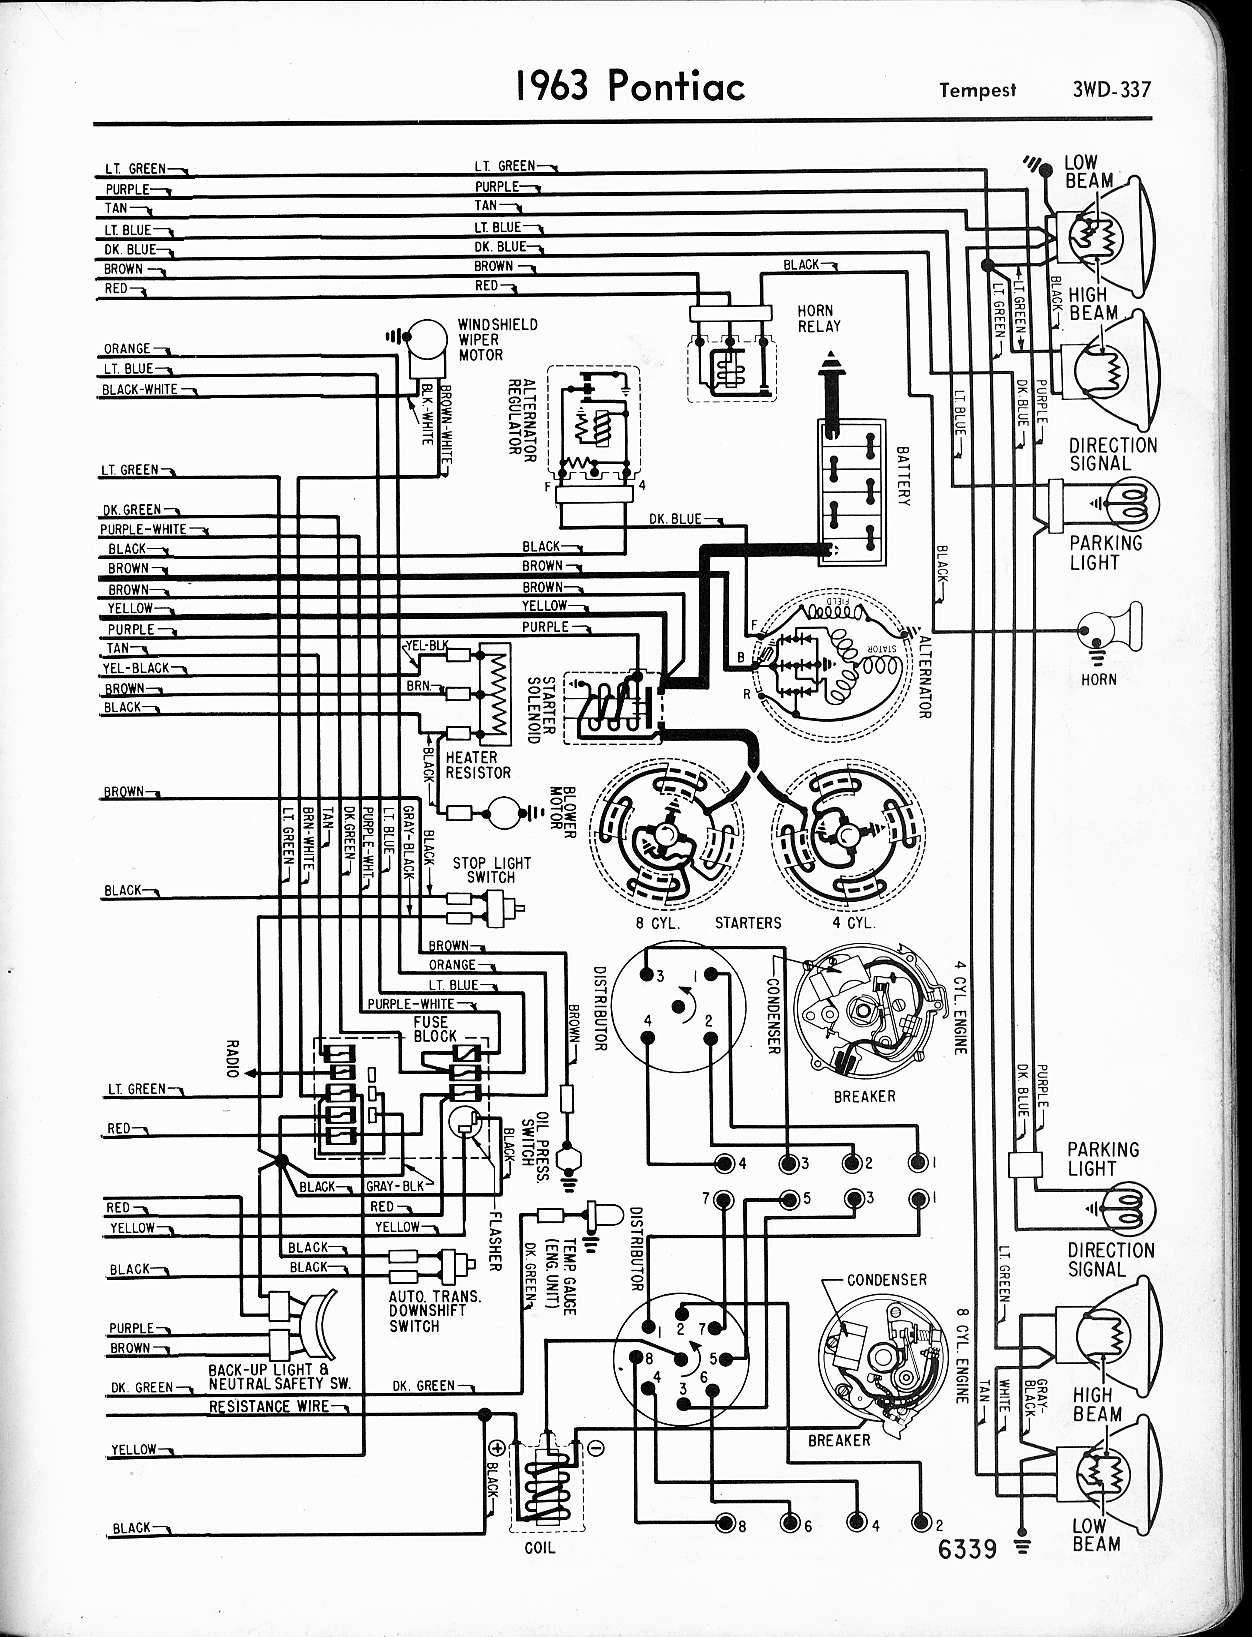 1963 tempest wiring right page